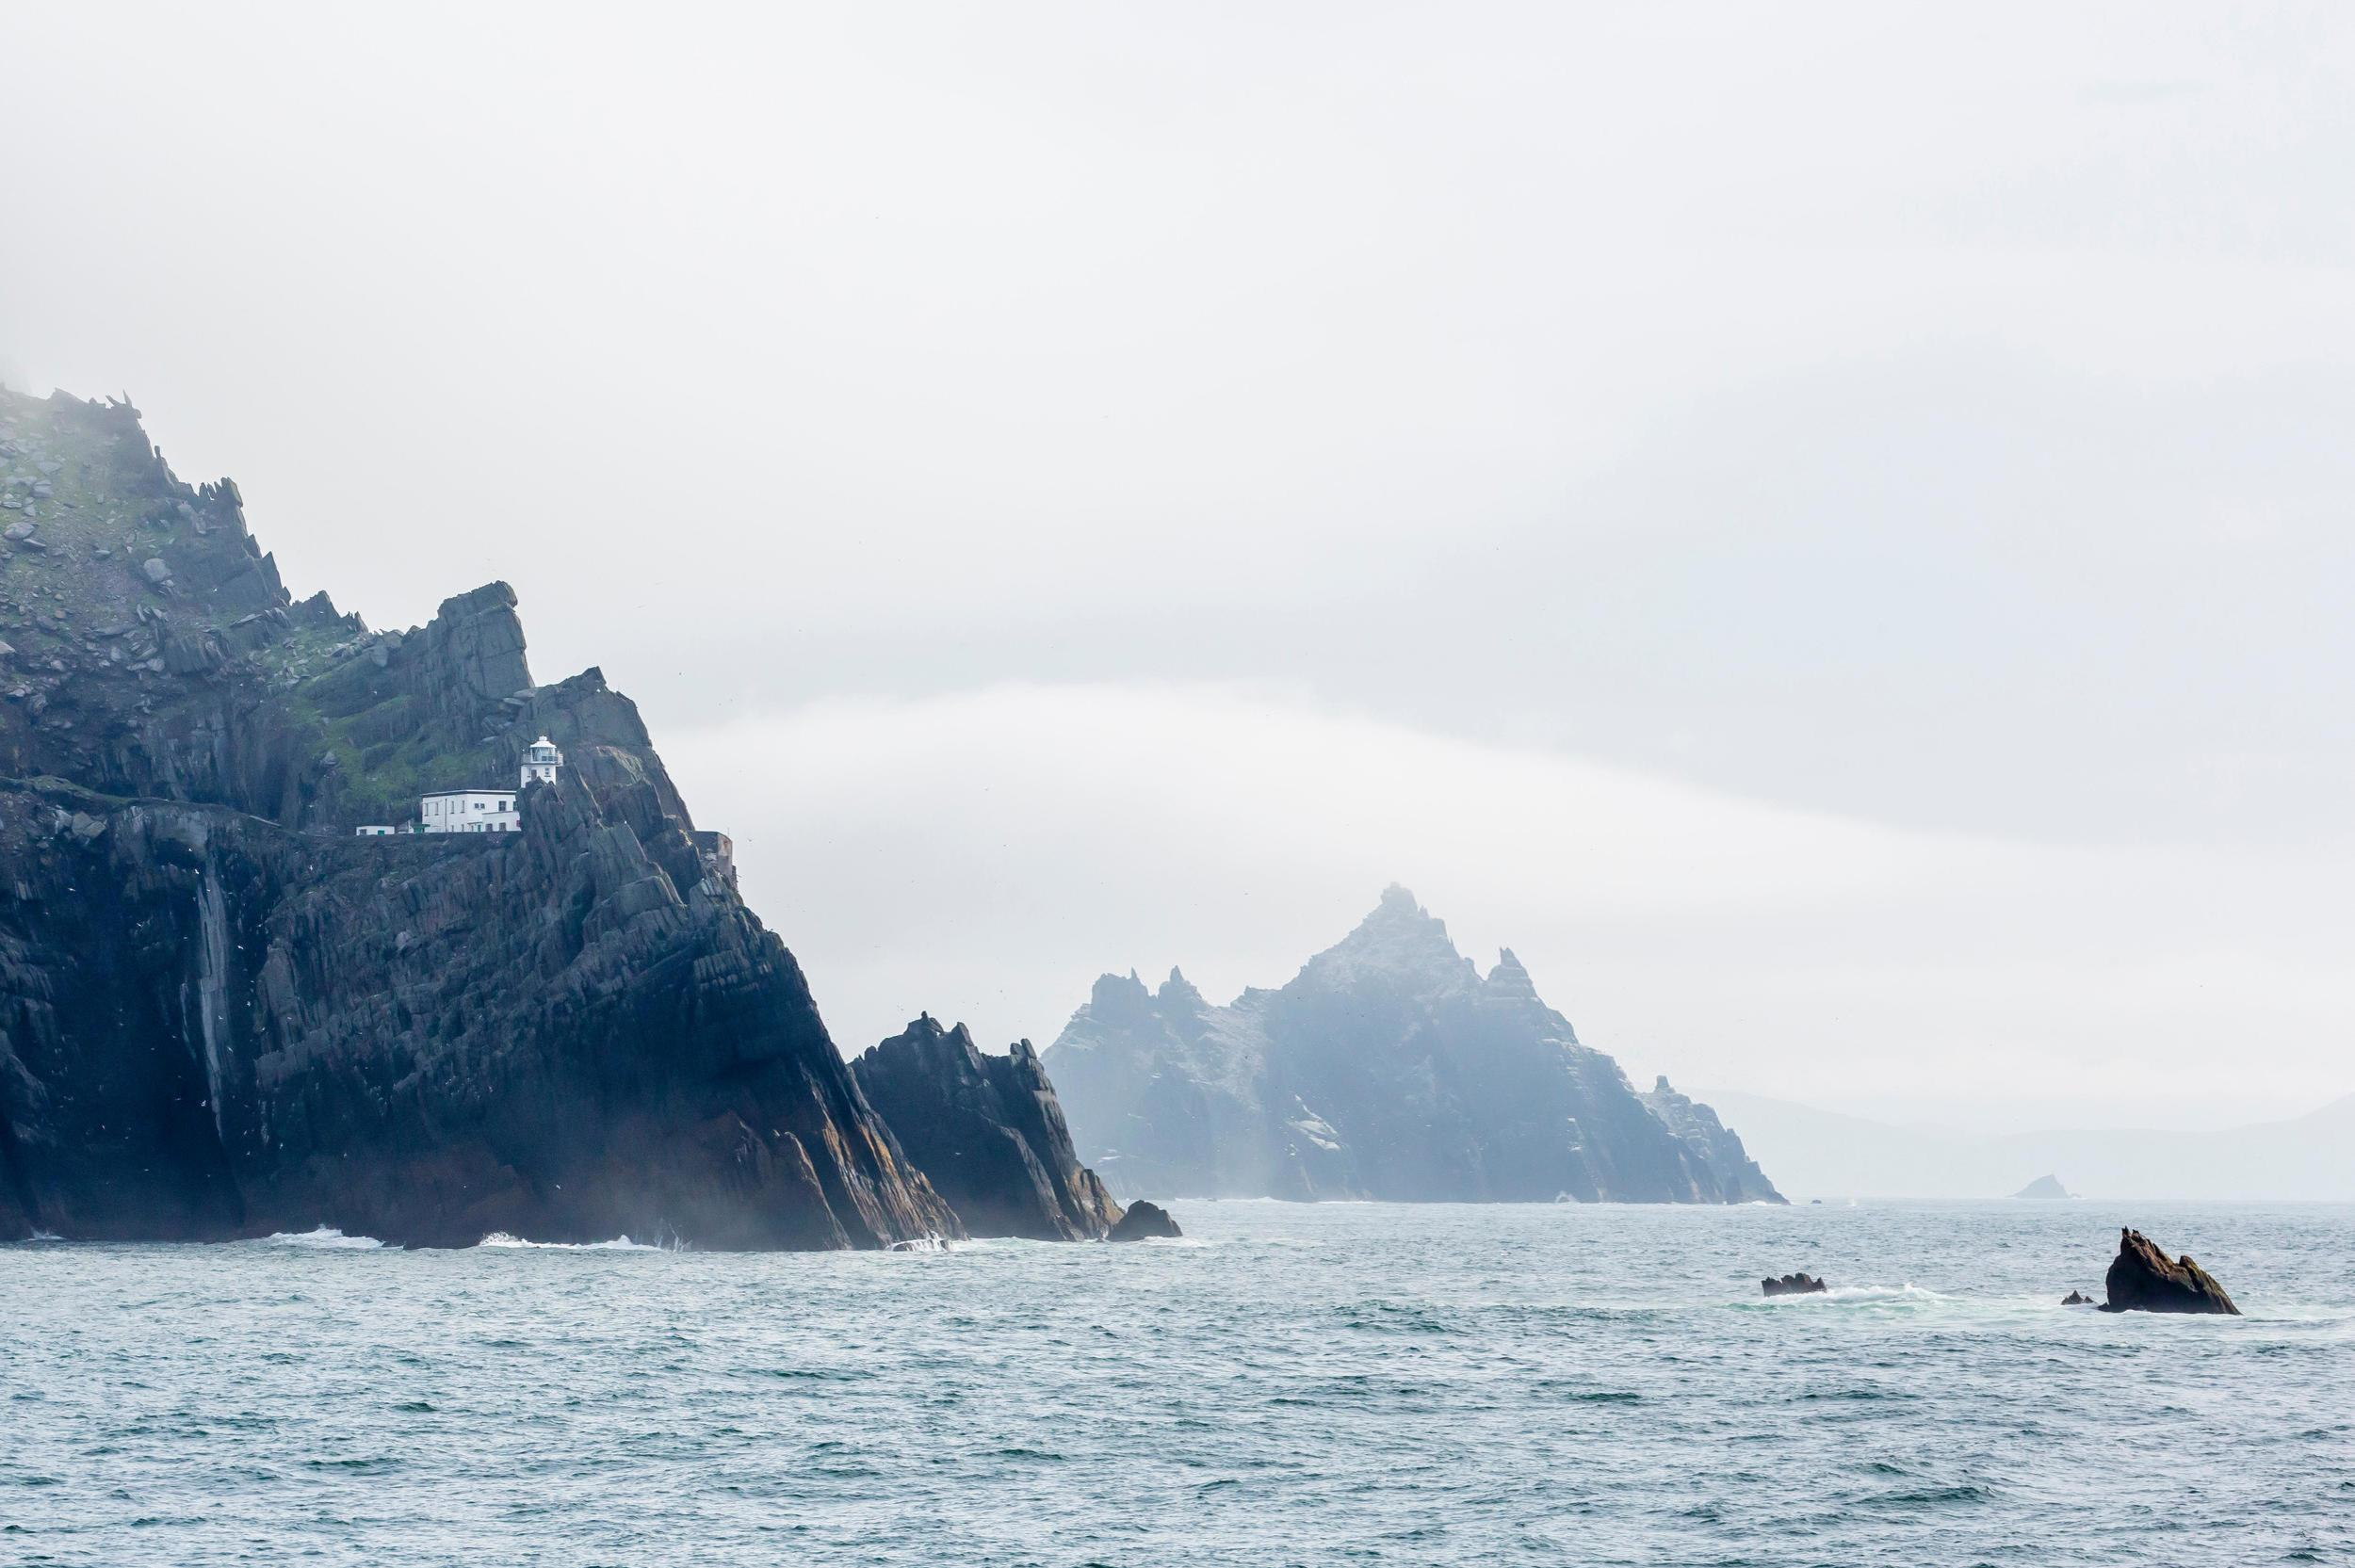 """A long time ago, far, far away… a small band of monks established a hidden base on a remote, wave-pounded hunk of rock rising out of the Atlantic like a giant triangle. With a setting like this, it's no wonder Skellig Michael made the new<i>Star Wars</i>location list. To get to this far-flung isle, a boat trip is necessary from theSkellig Ring, perhaps <a href=""""http://travel.aol.co.uk/tag/ireland"""" target=""""_blank"""">Ireland</a>'s most charismatically wild and emerald stretch of coastline. Glimpsed at the end of<i>The Force Awakens</i>, Skellig Michael will play a bigger role in this year's sequel and local businesses are gearing up for the expected visitor bump."""